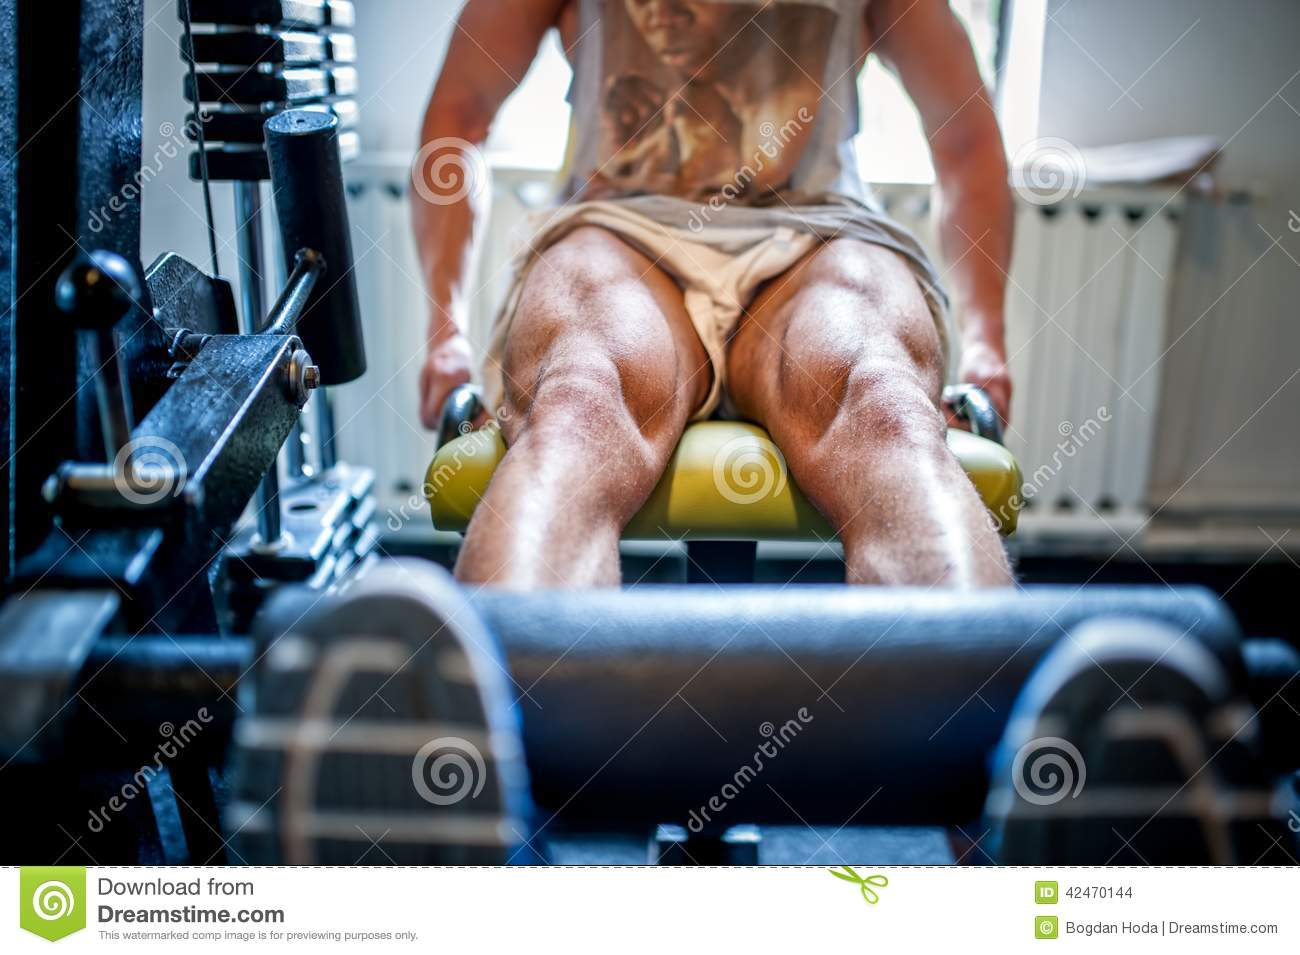 Muscular Feet Of A Bodybuilder In The Gym Stock Photo Image Of